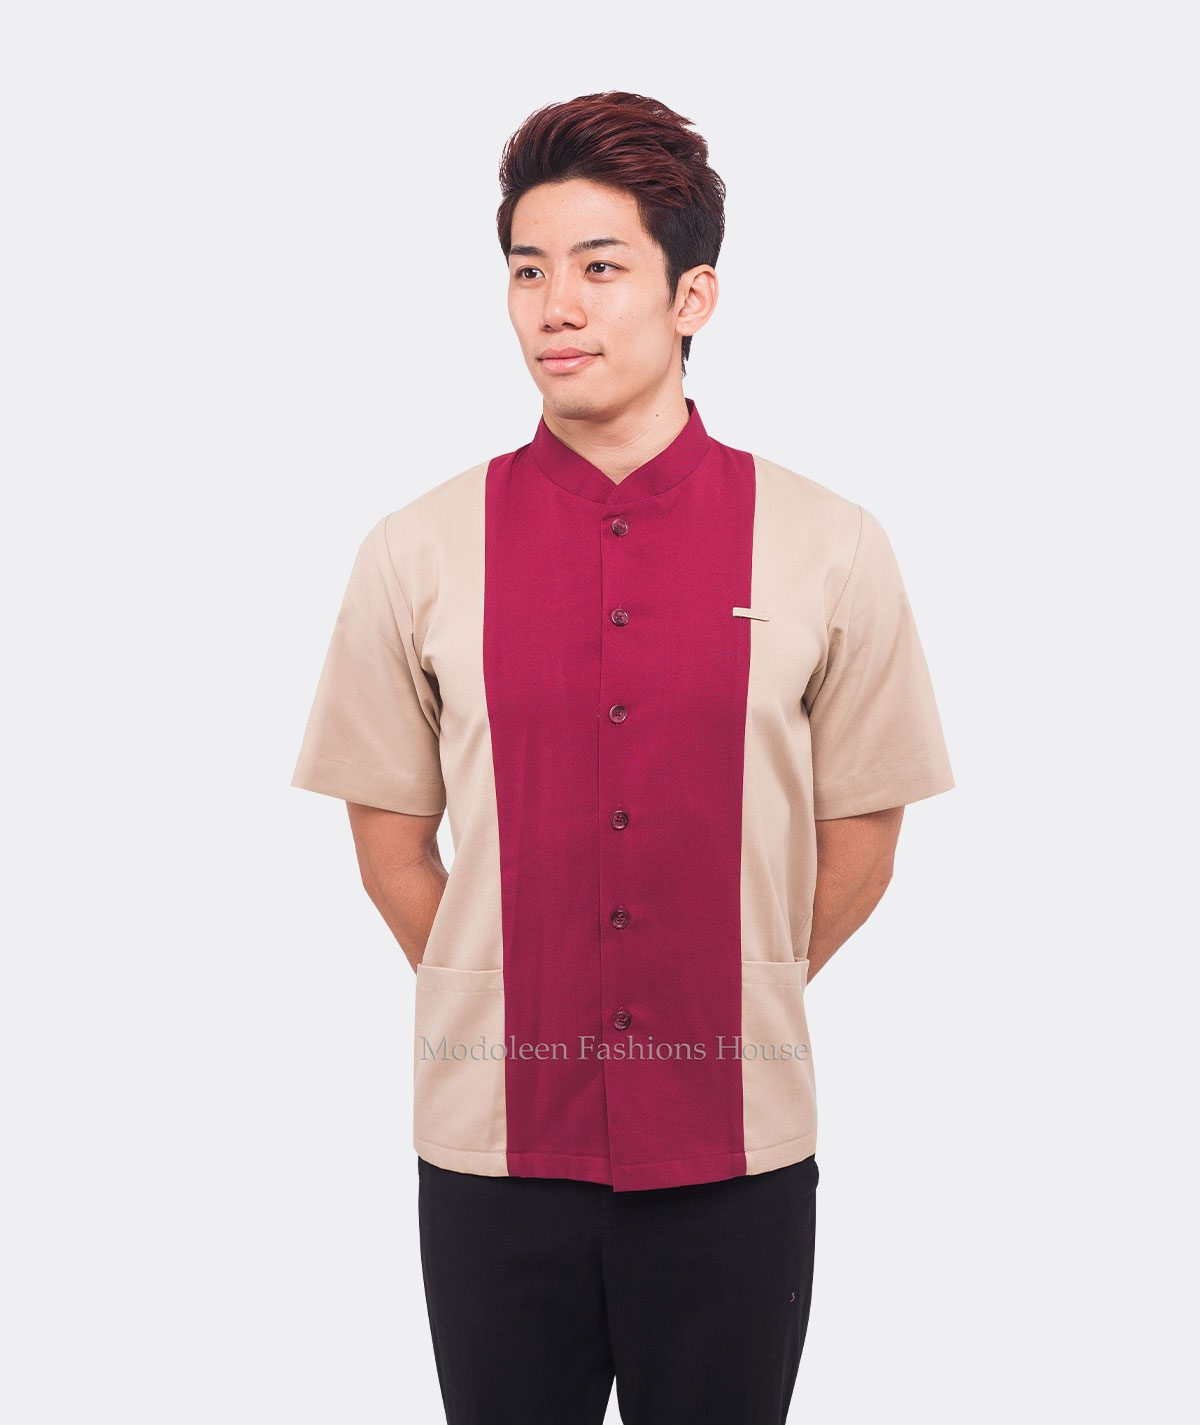 Hotel Services Country Club House Keeping Room Attendant Shirt Uniform